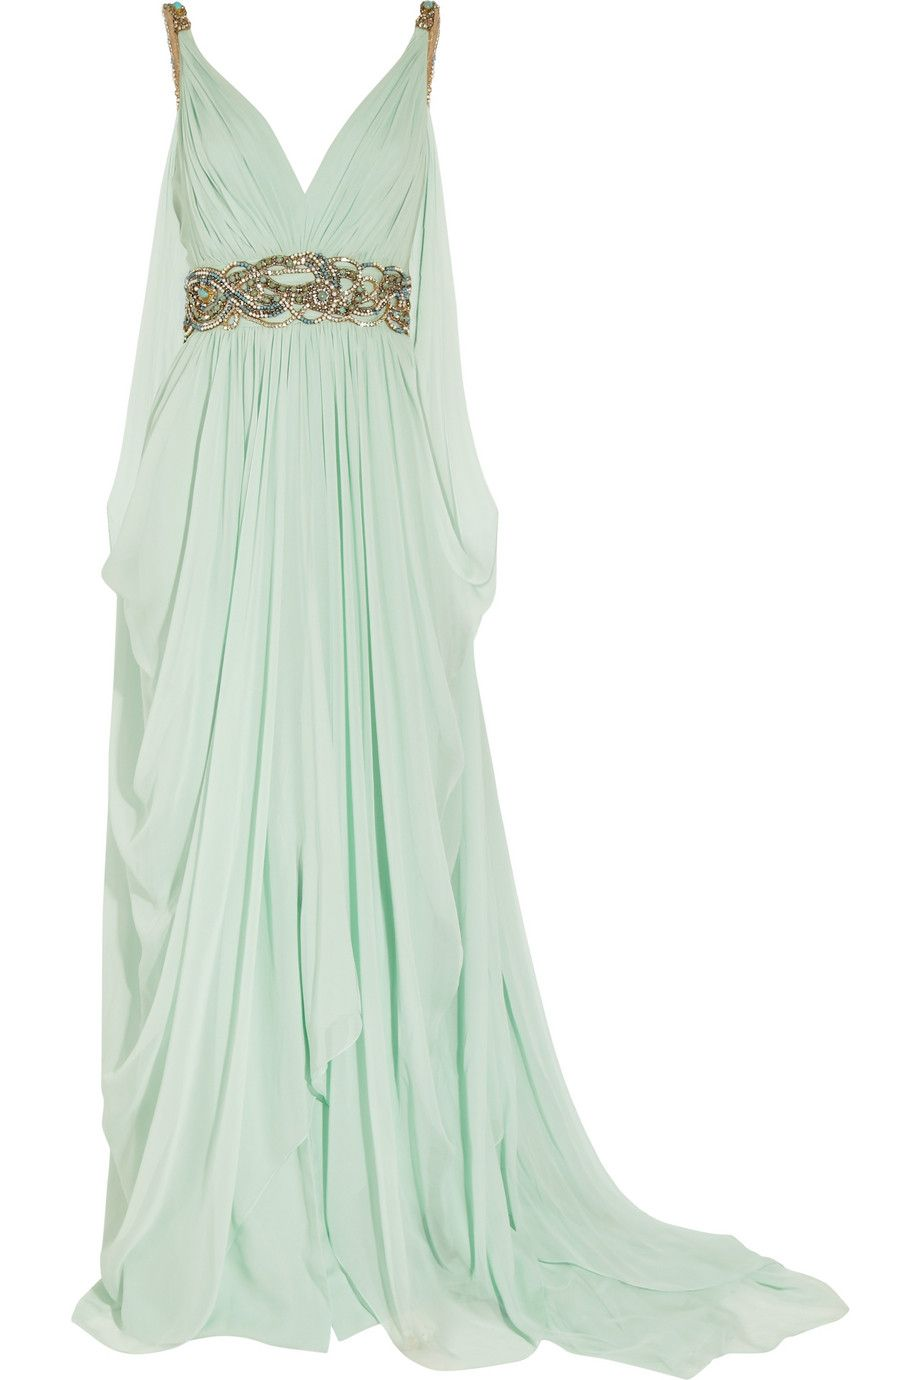 Bridesmaids anna totten thompson greek pinterest chiffon